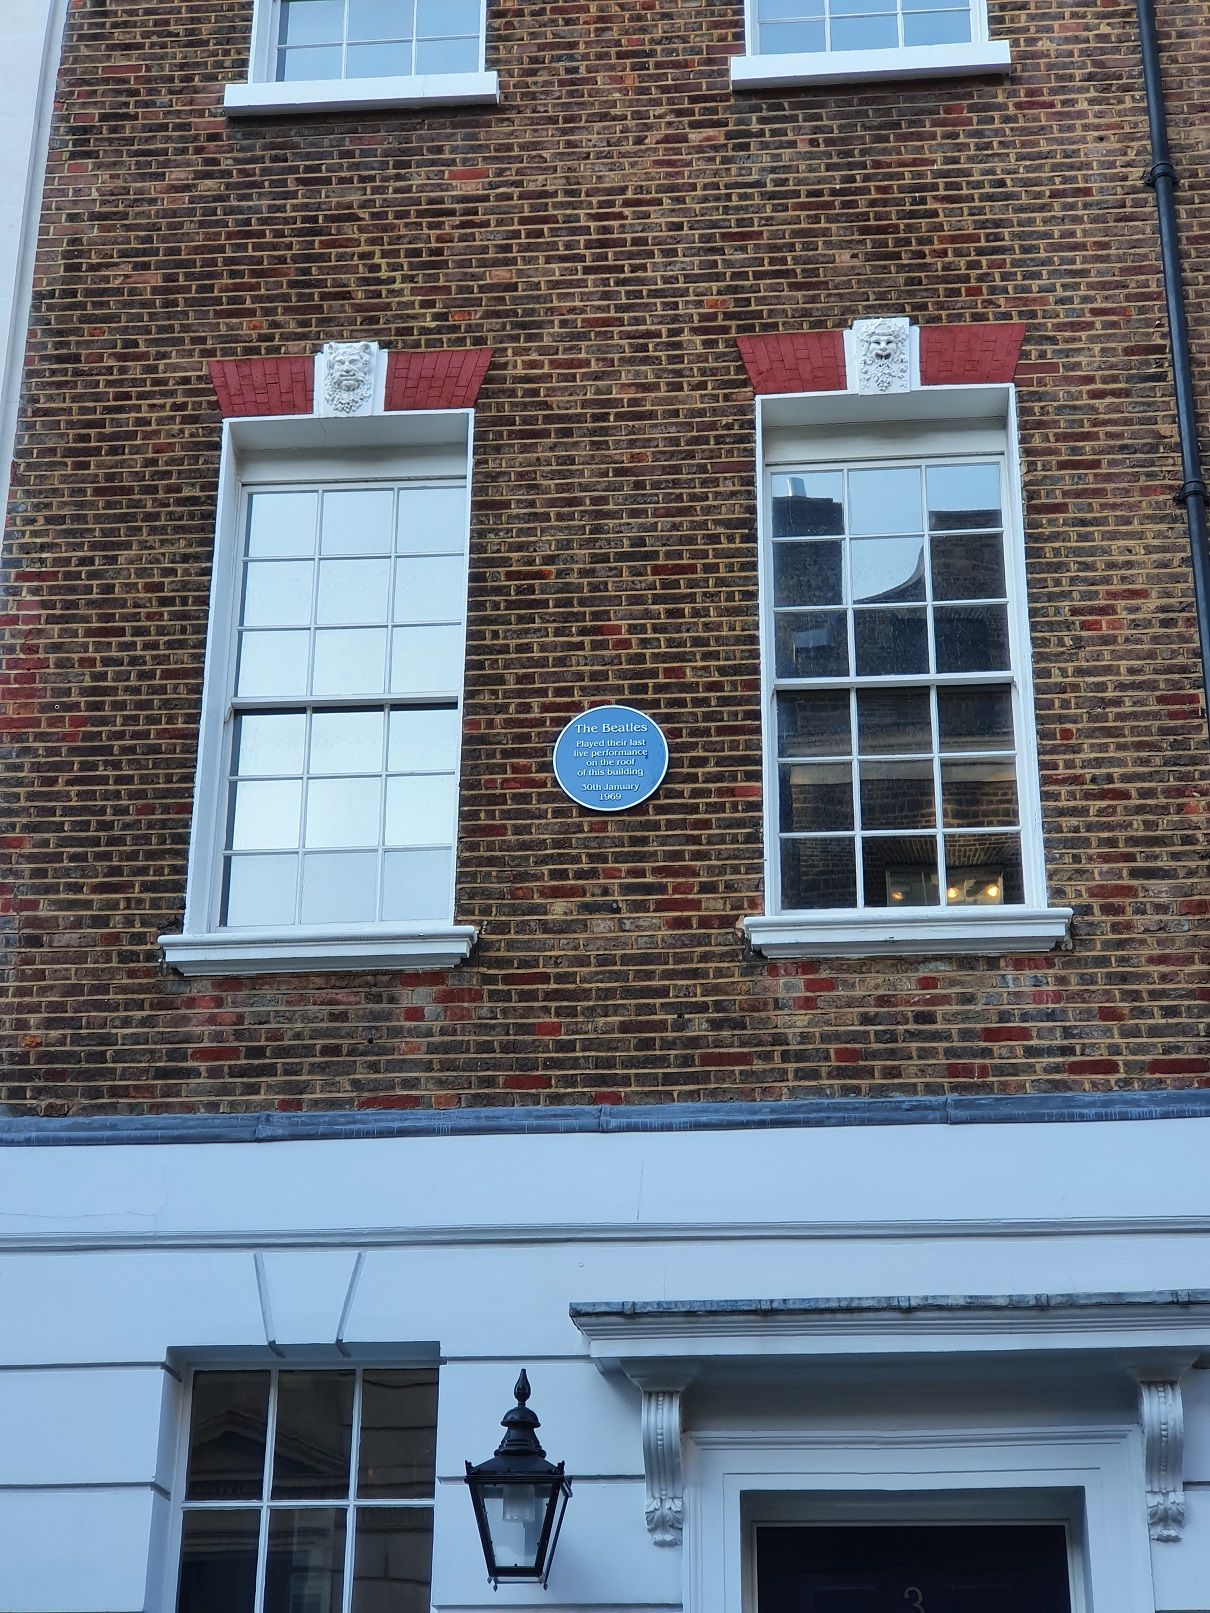 Mayfair – Lesser Known Parts